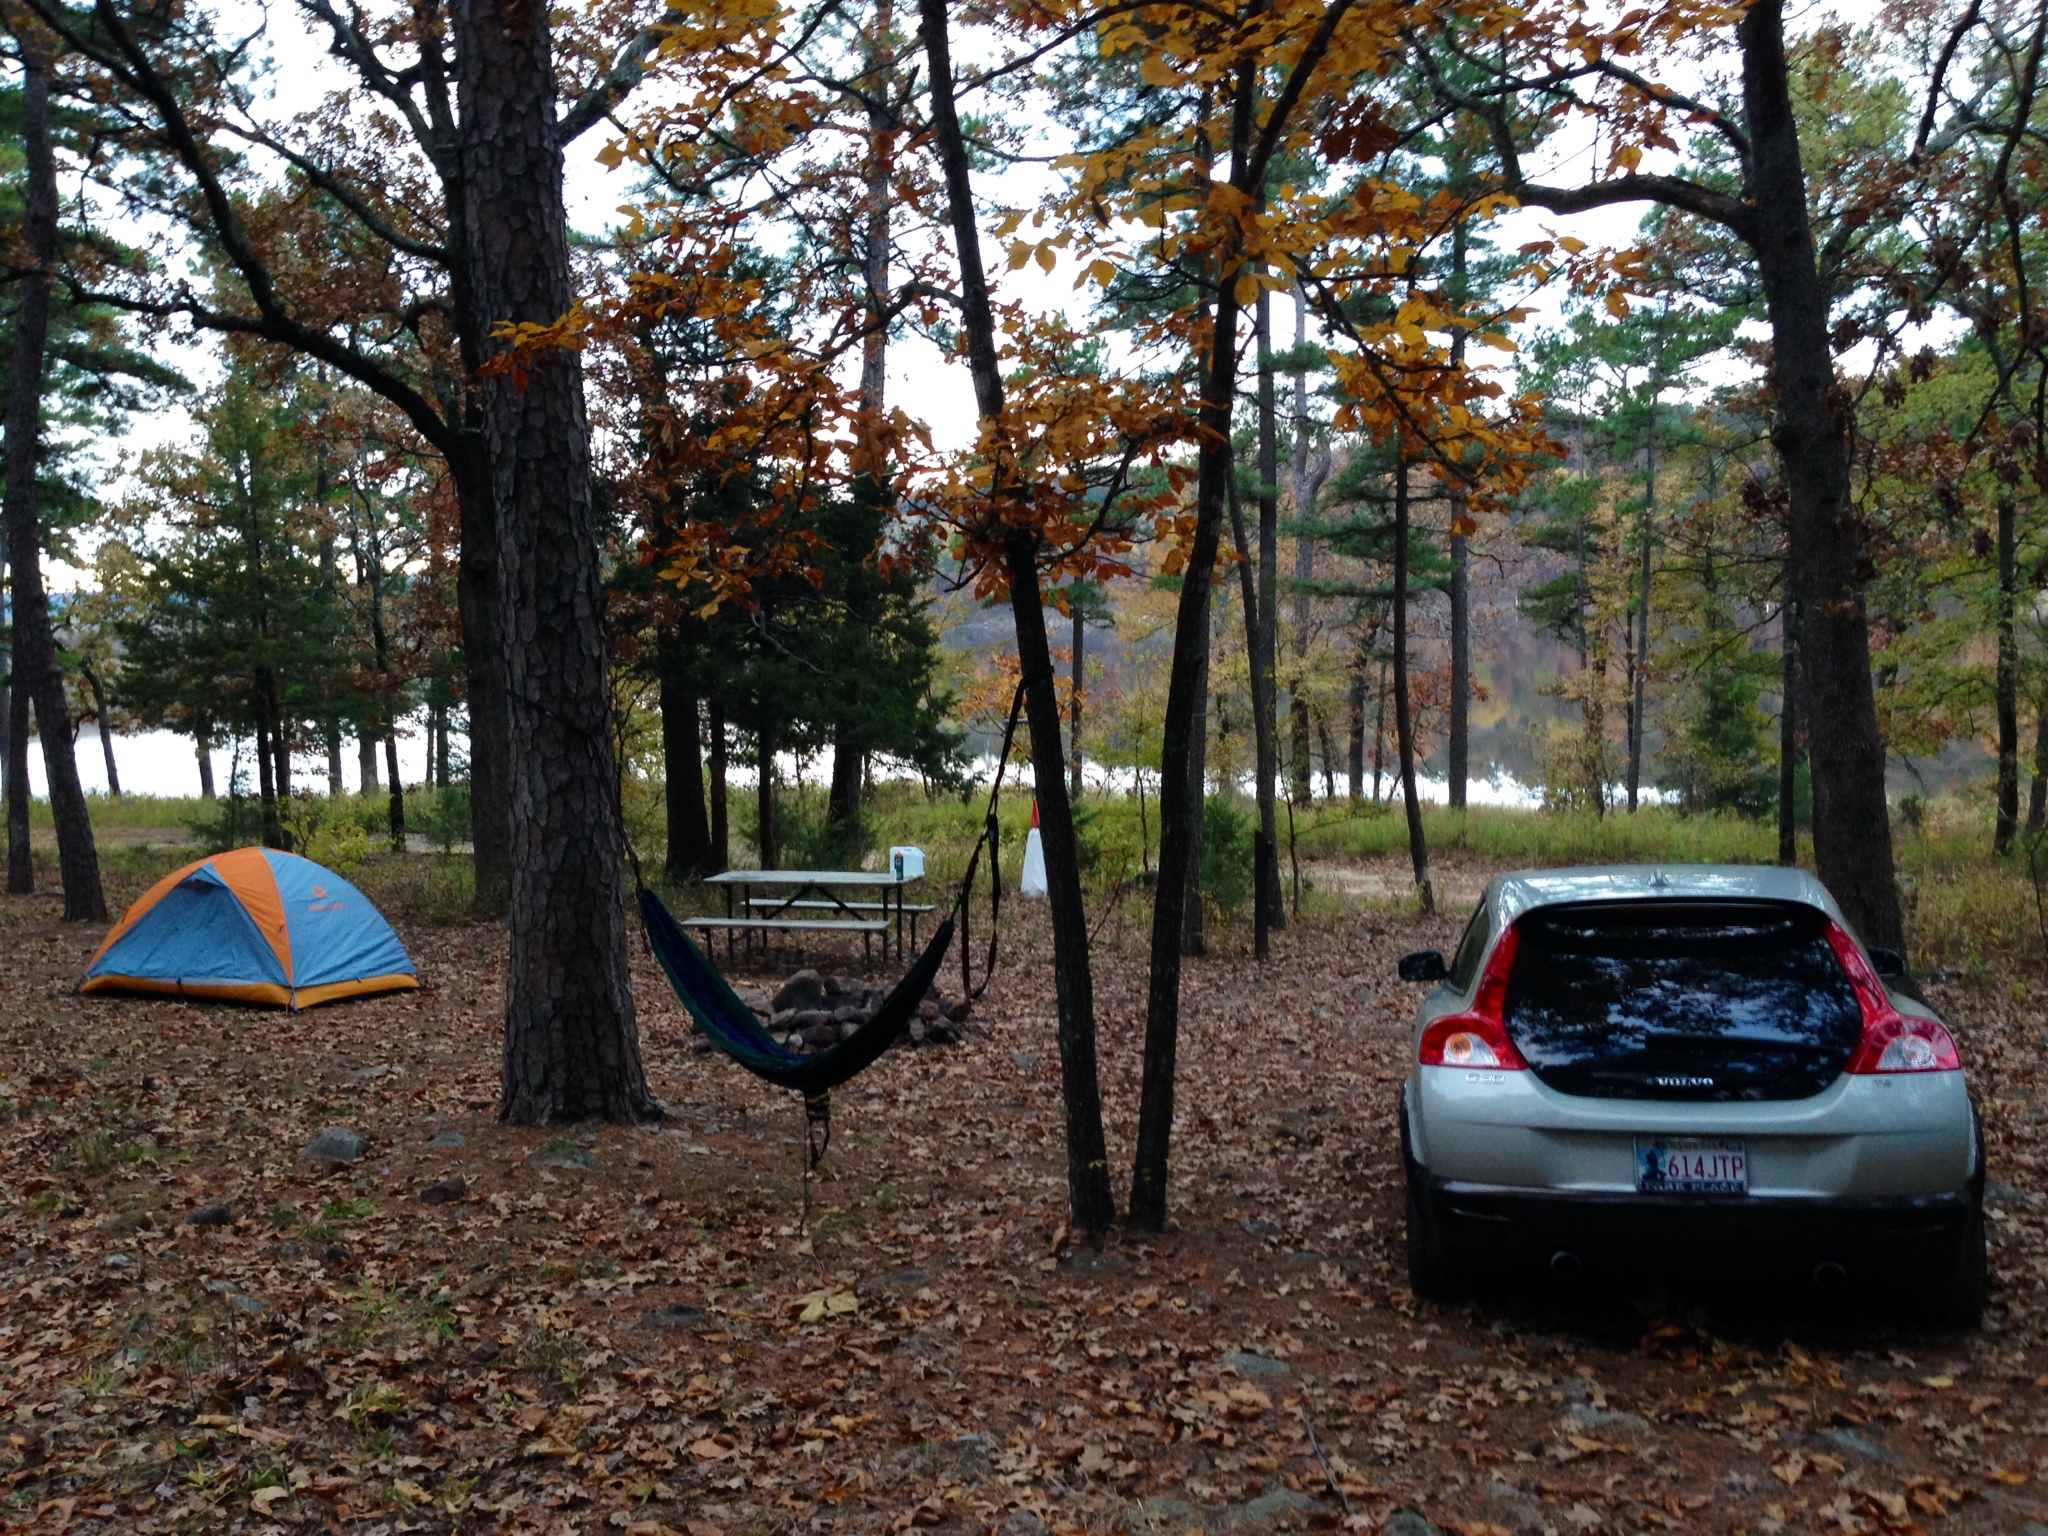 Camping out at Robbers Cave State Park – the meandering mates